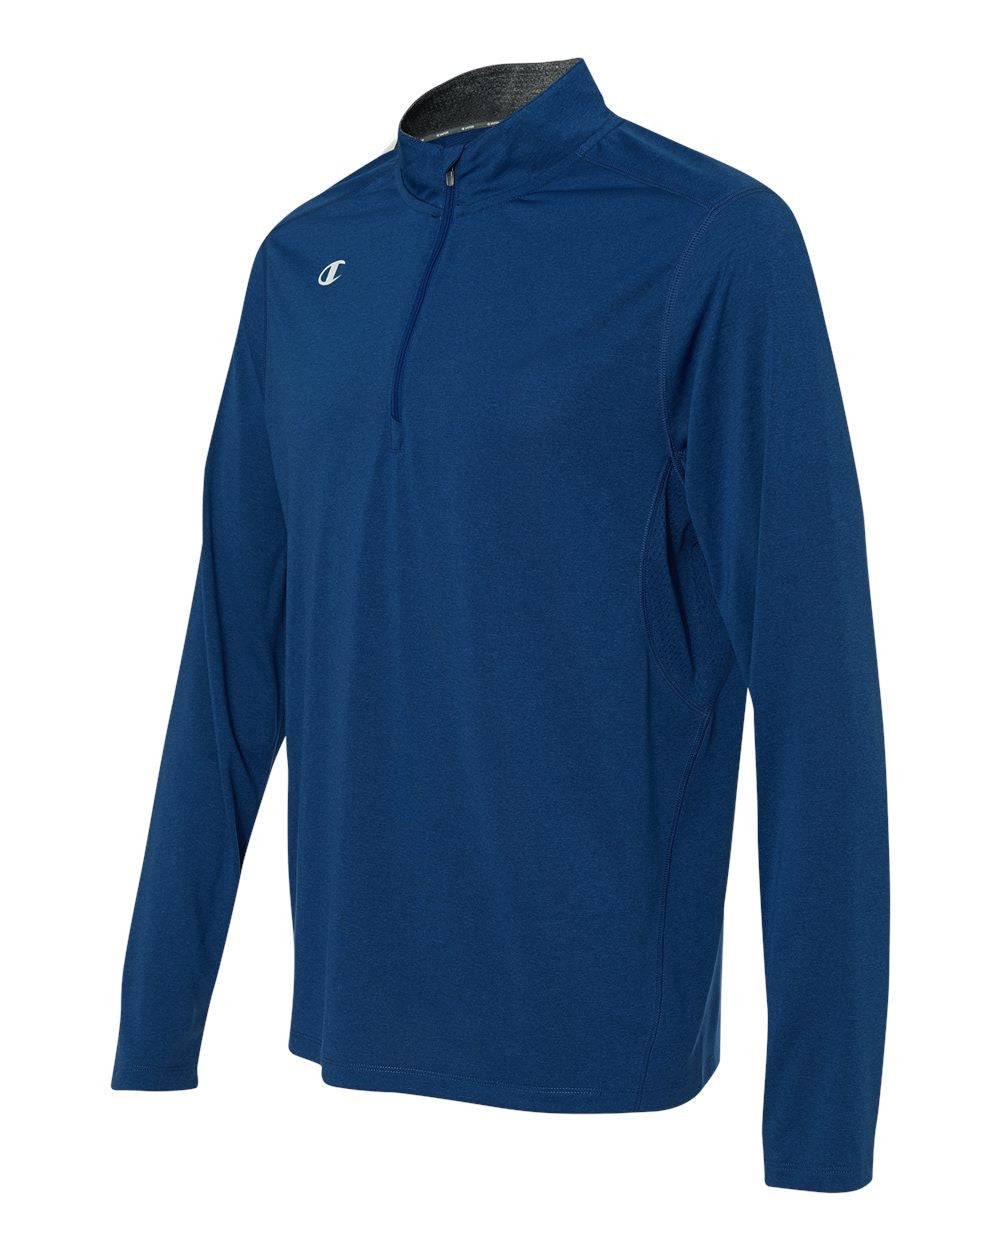 Vapor Performance Quarter-Zip Pullover by Champion - Discountedrack.com